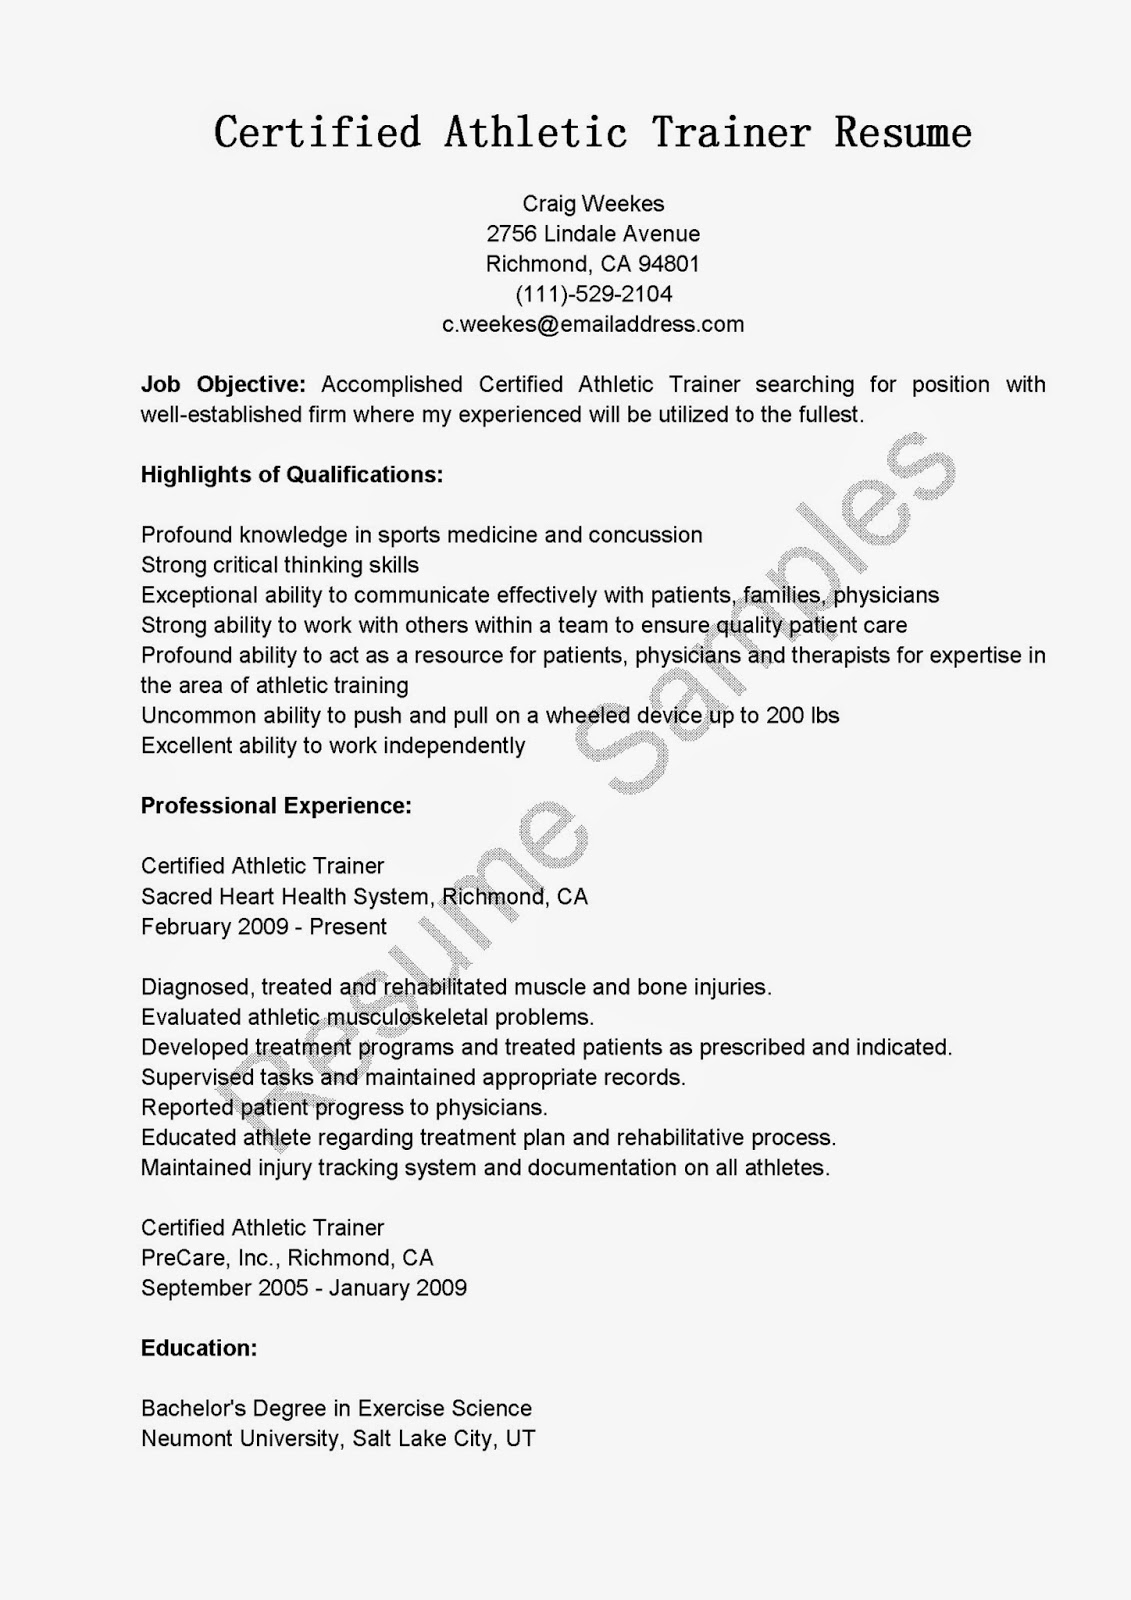 job description project manager pmo resume samples job description project manager pmo project manager job description job interviews projets quest ce quun pmo